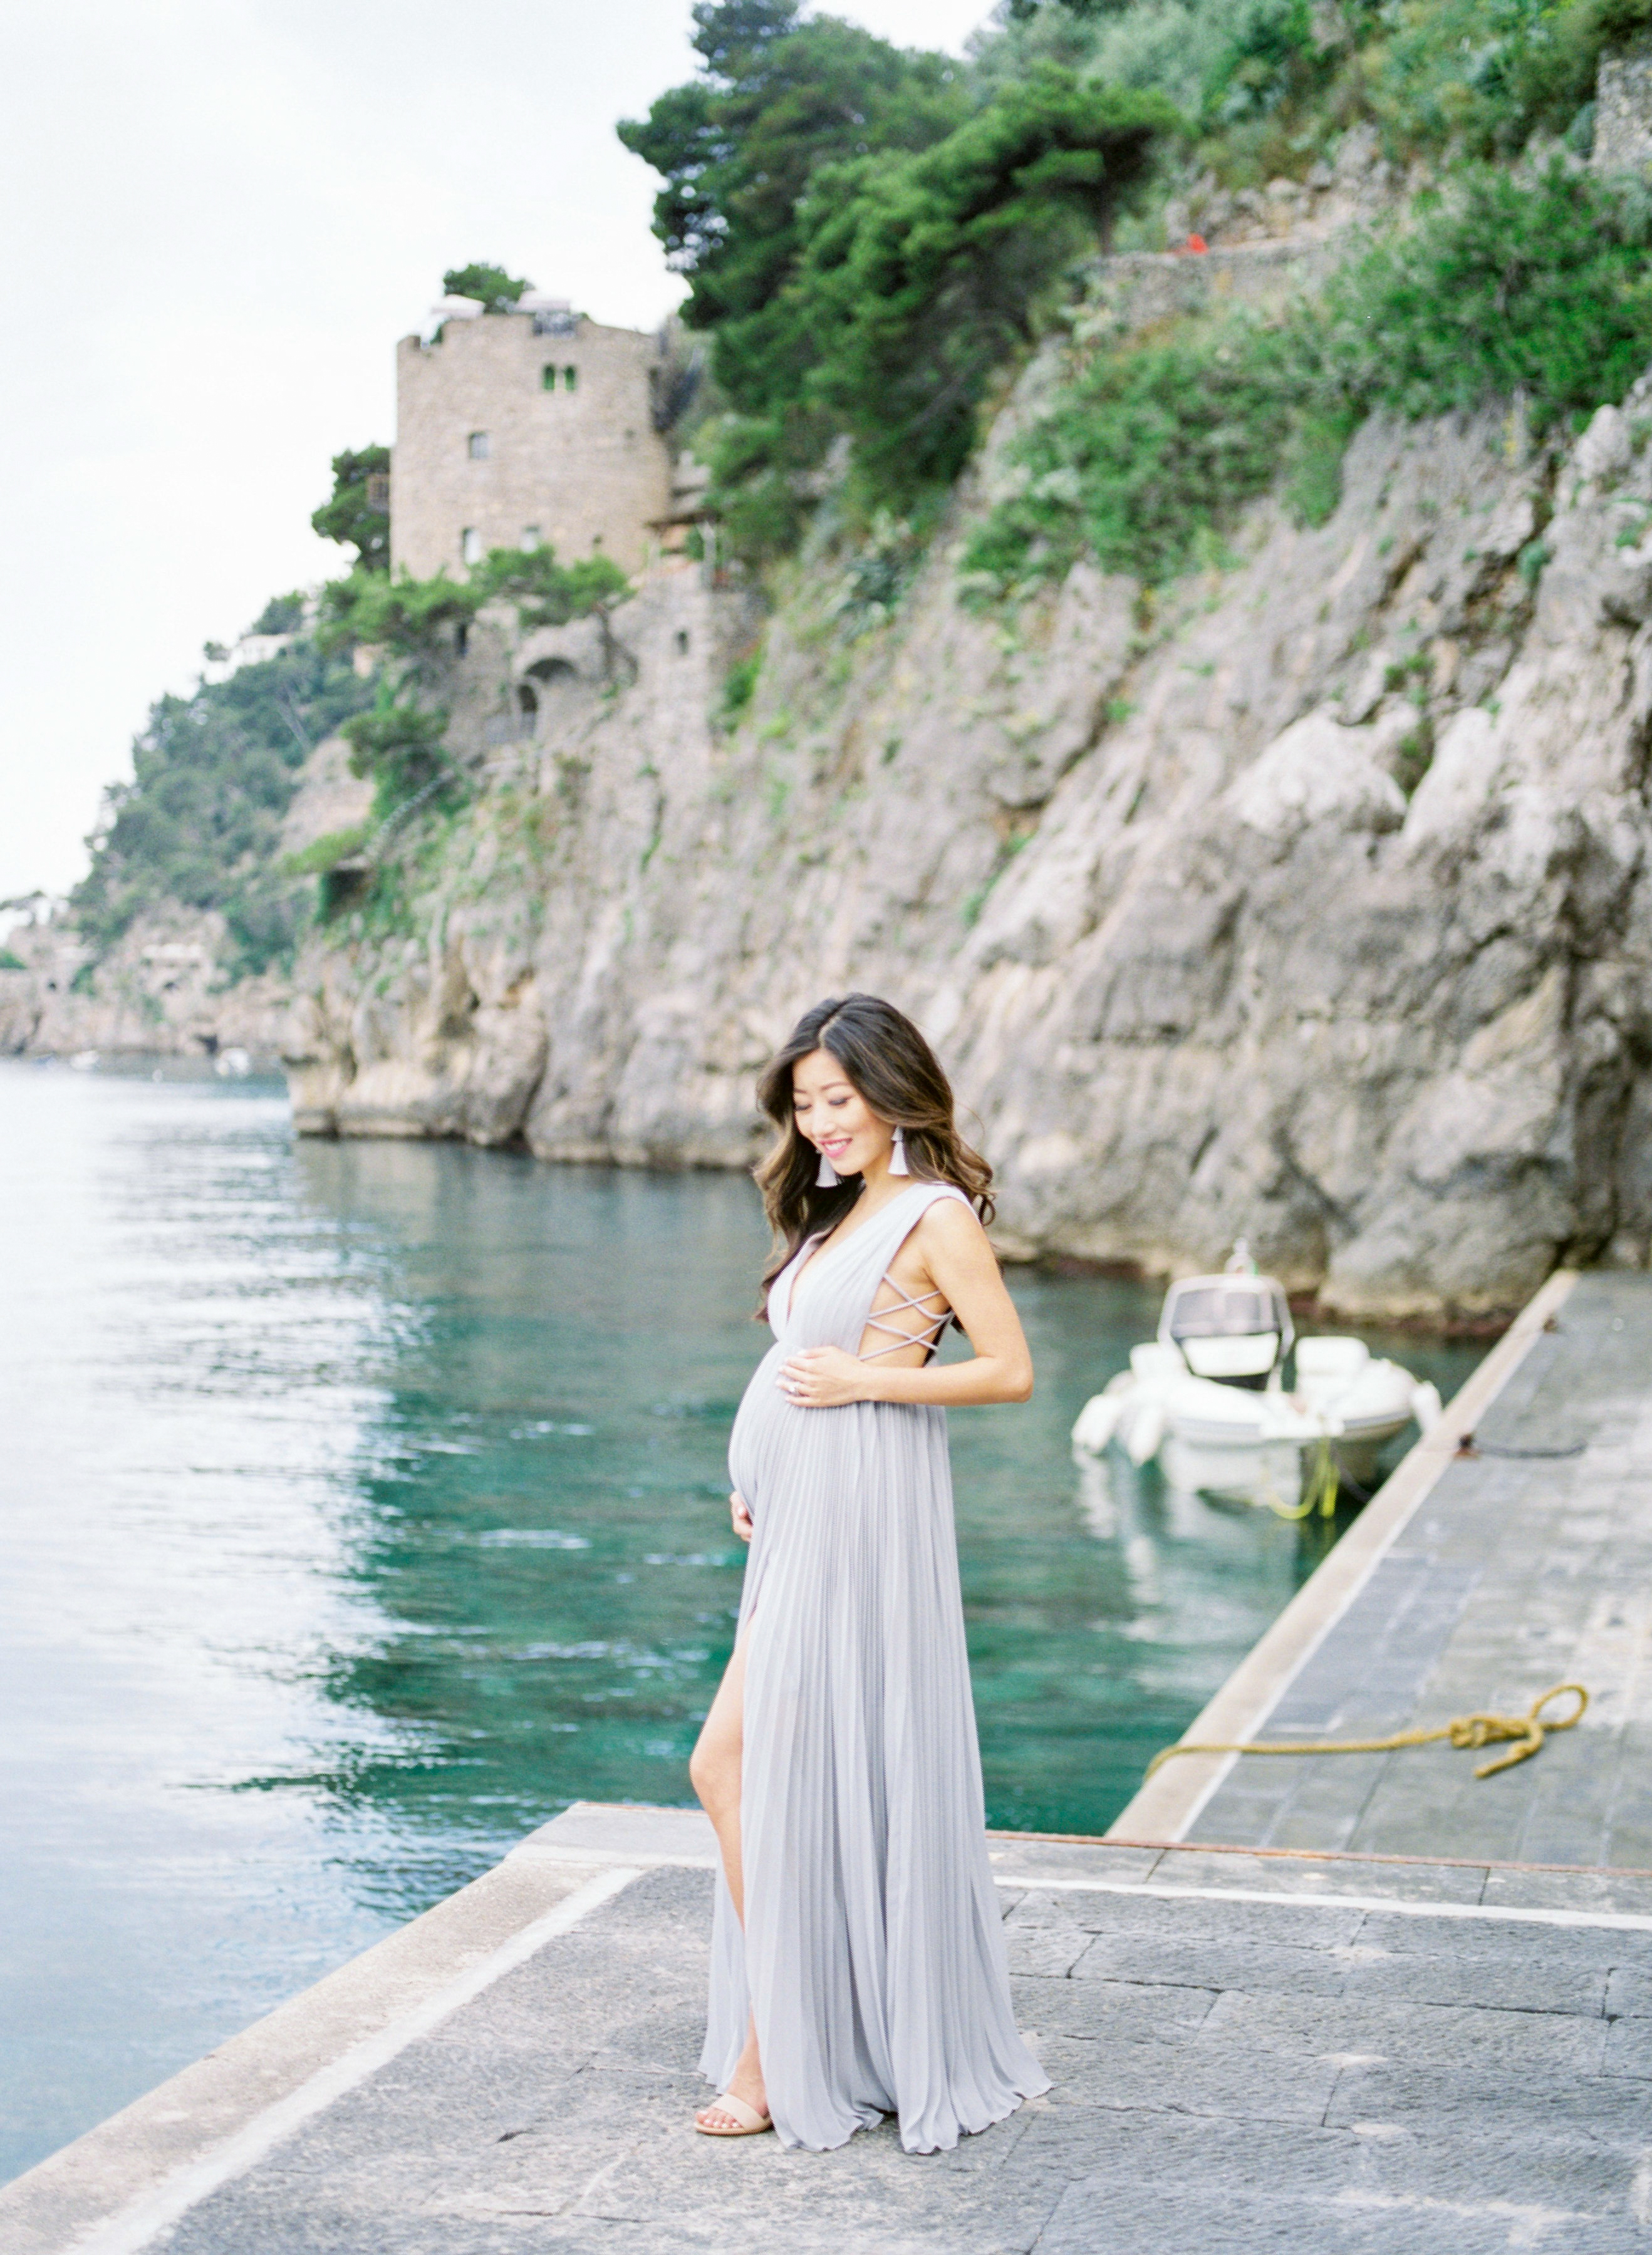 maternity photoshoot long maxi dress amalfi coast positano italy